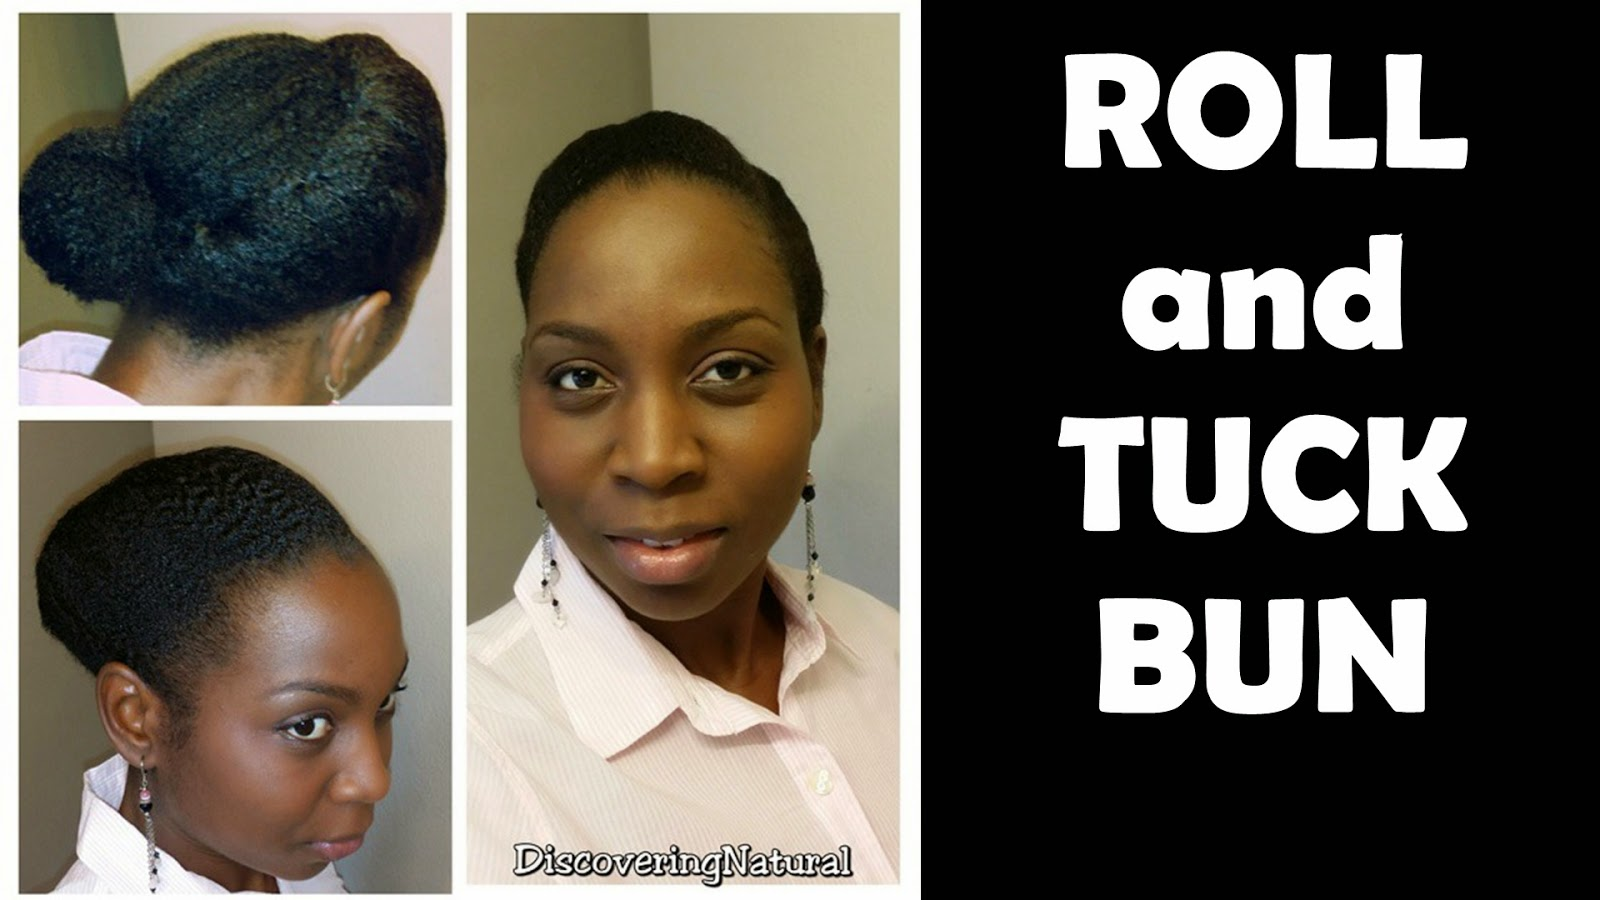 Natural Hairstyle for Work | Roll Tuck Bun